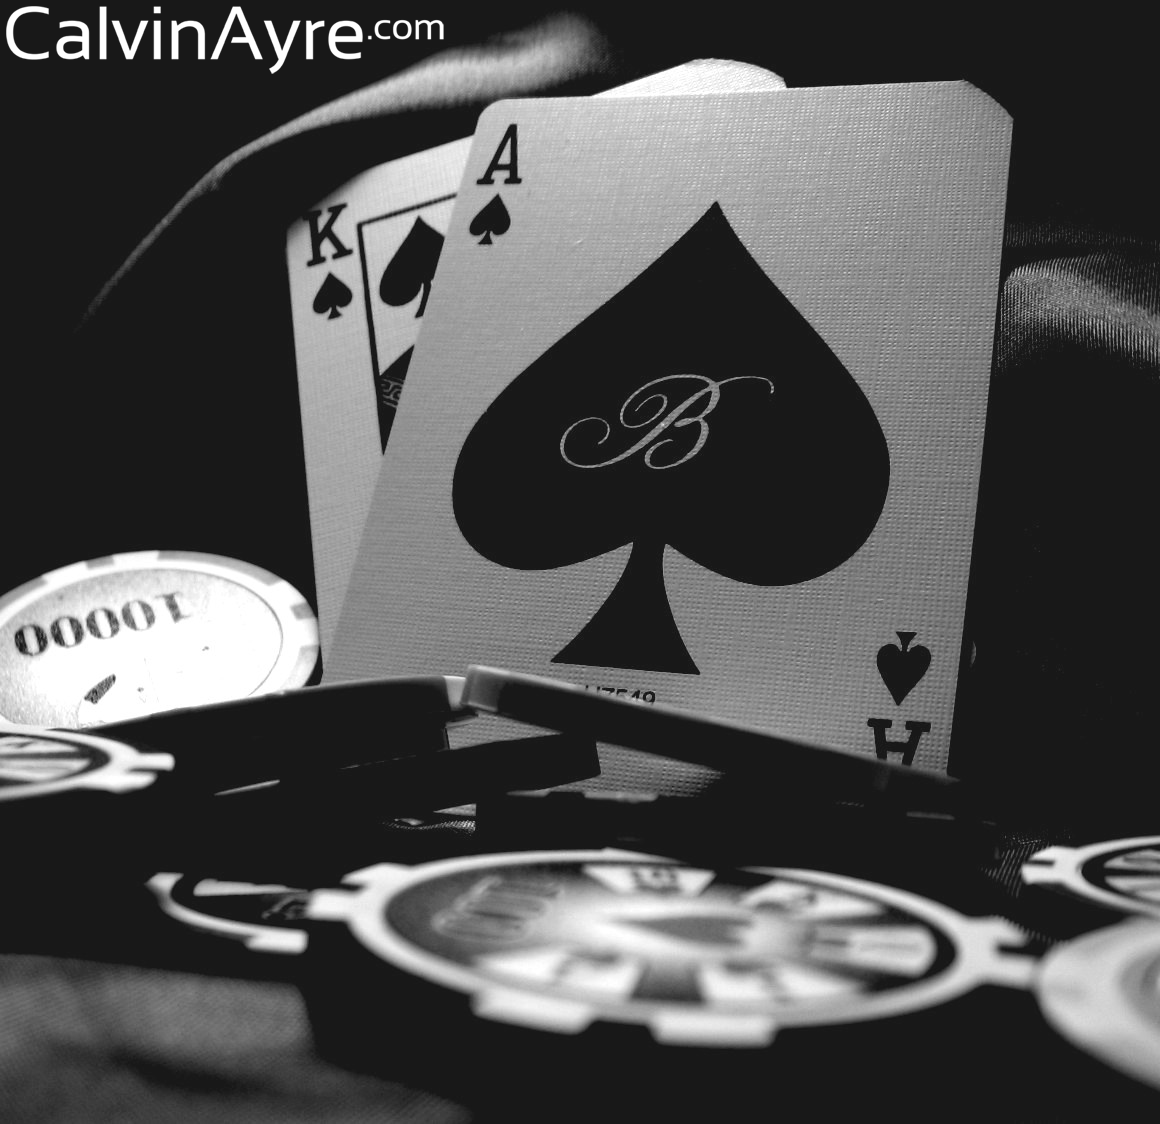 First-Time Poker Winners Don't Become Long-Term Customers